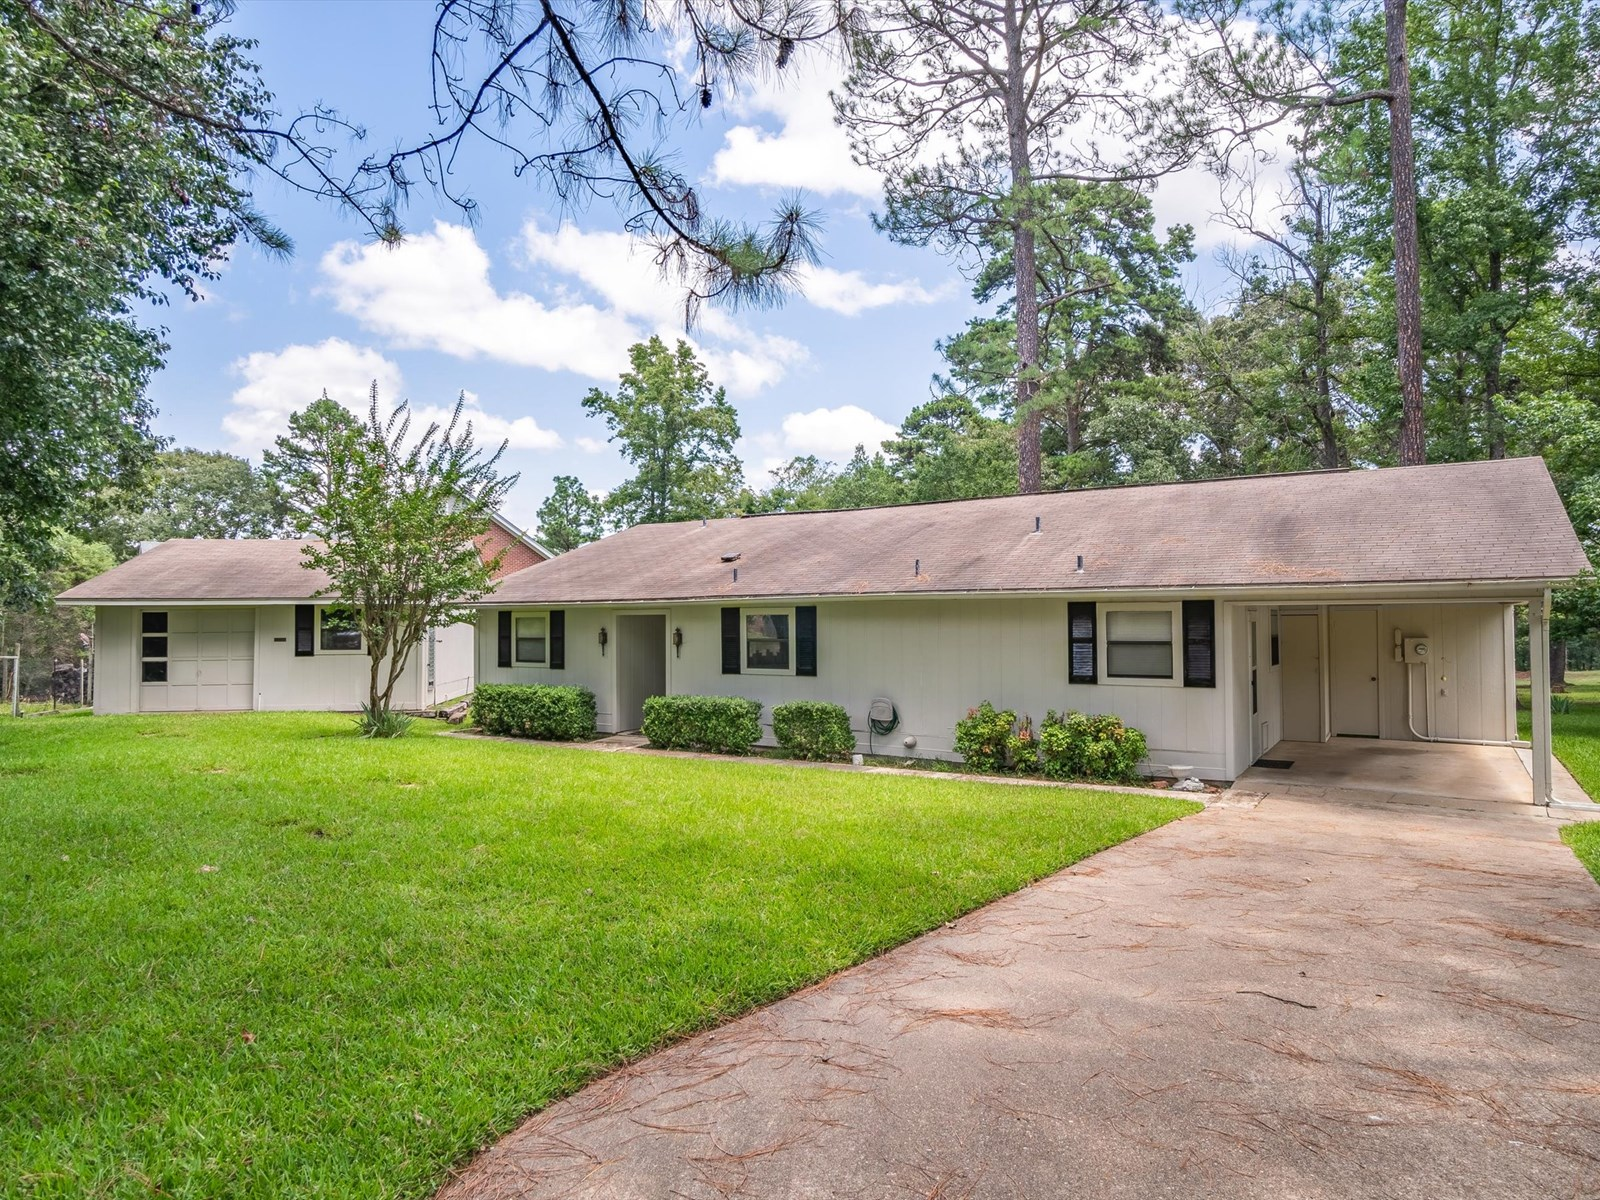 GOLF COURSE HOME HOLLY LAKE RANCH TEXAS - GATED COMMUNITY